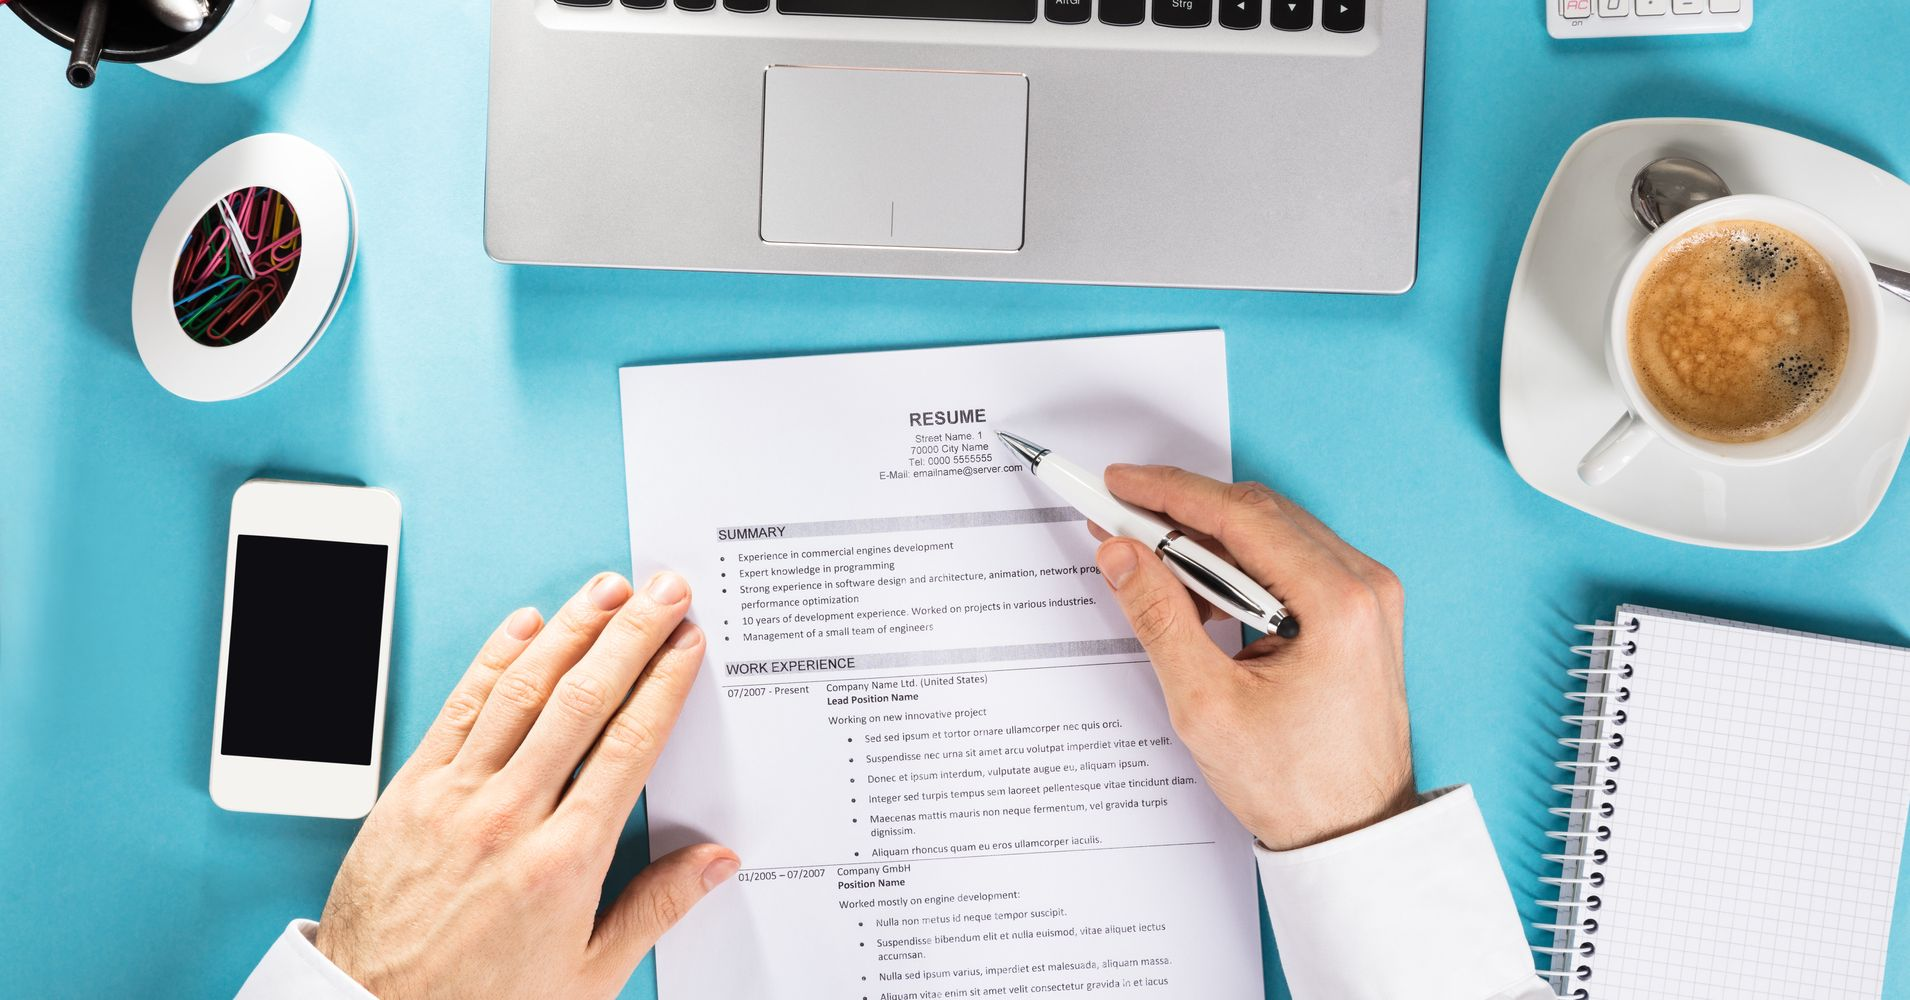 9 Seemingly Harmless Things You Should Never Have On Your Resume